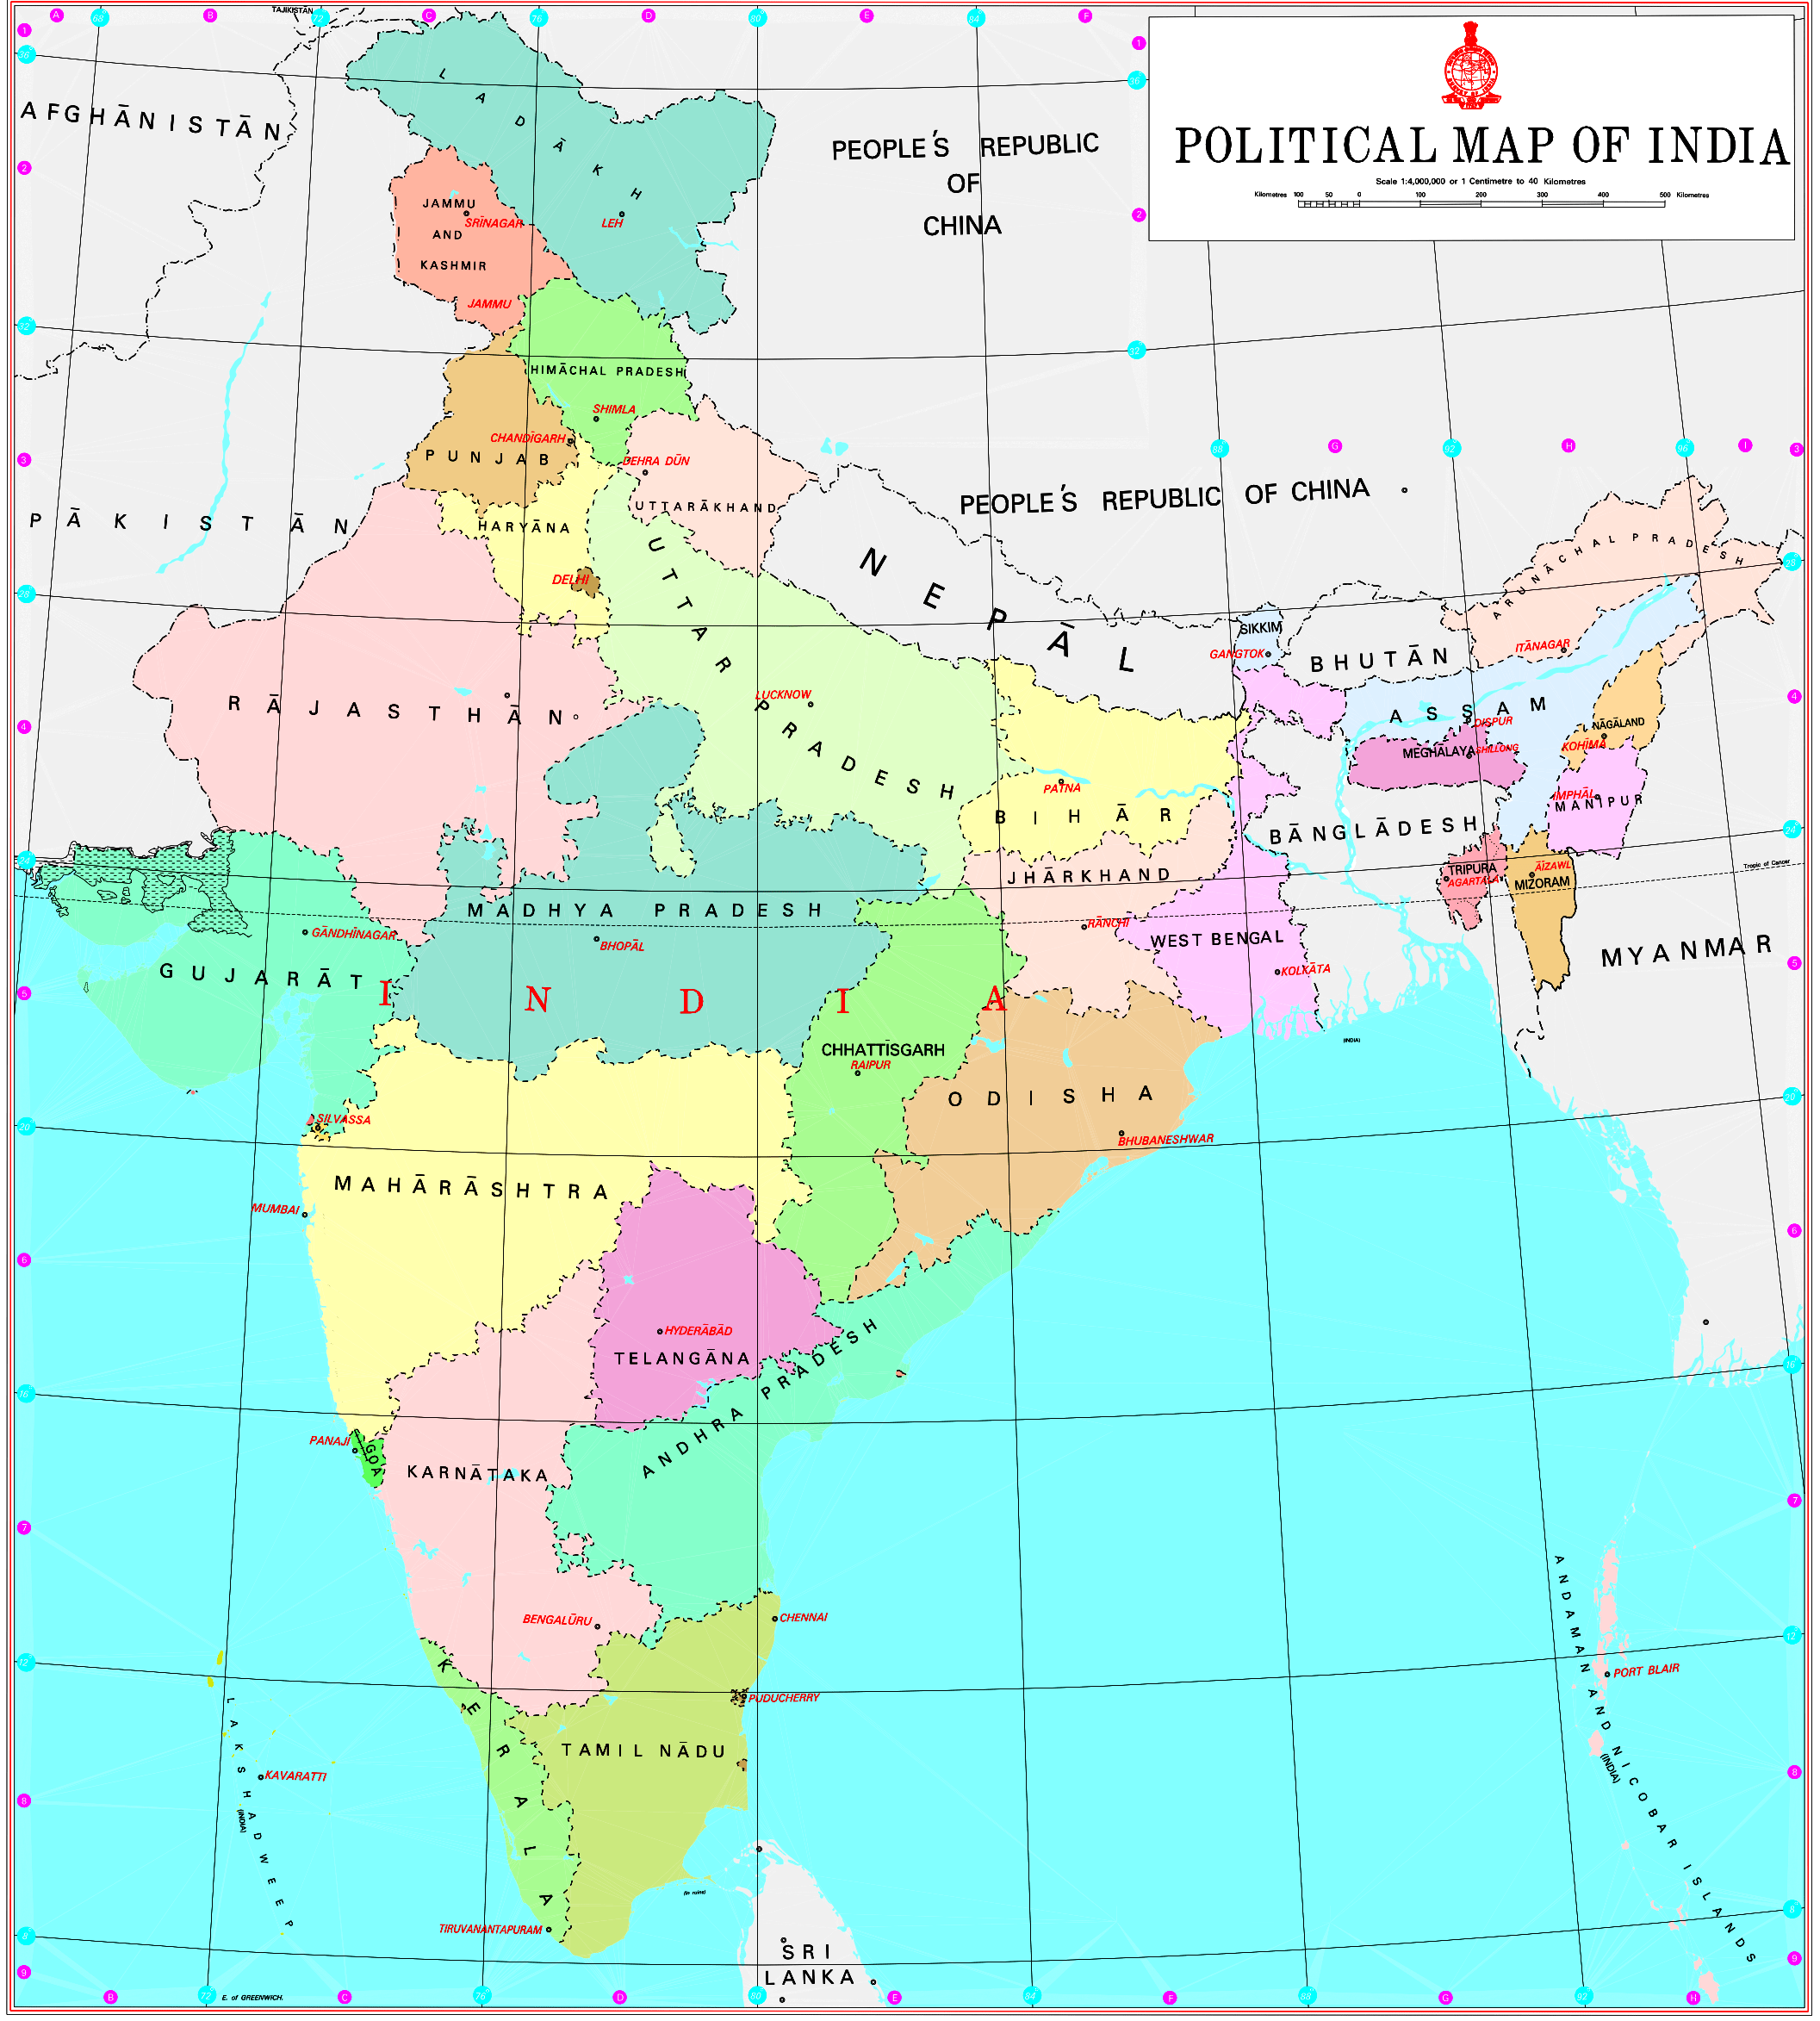 New Map Of India - 'A Political Map'